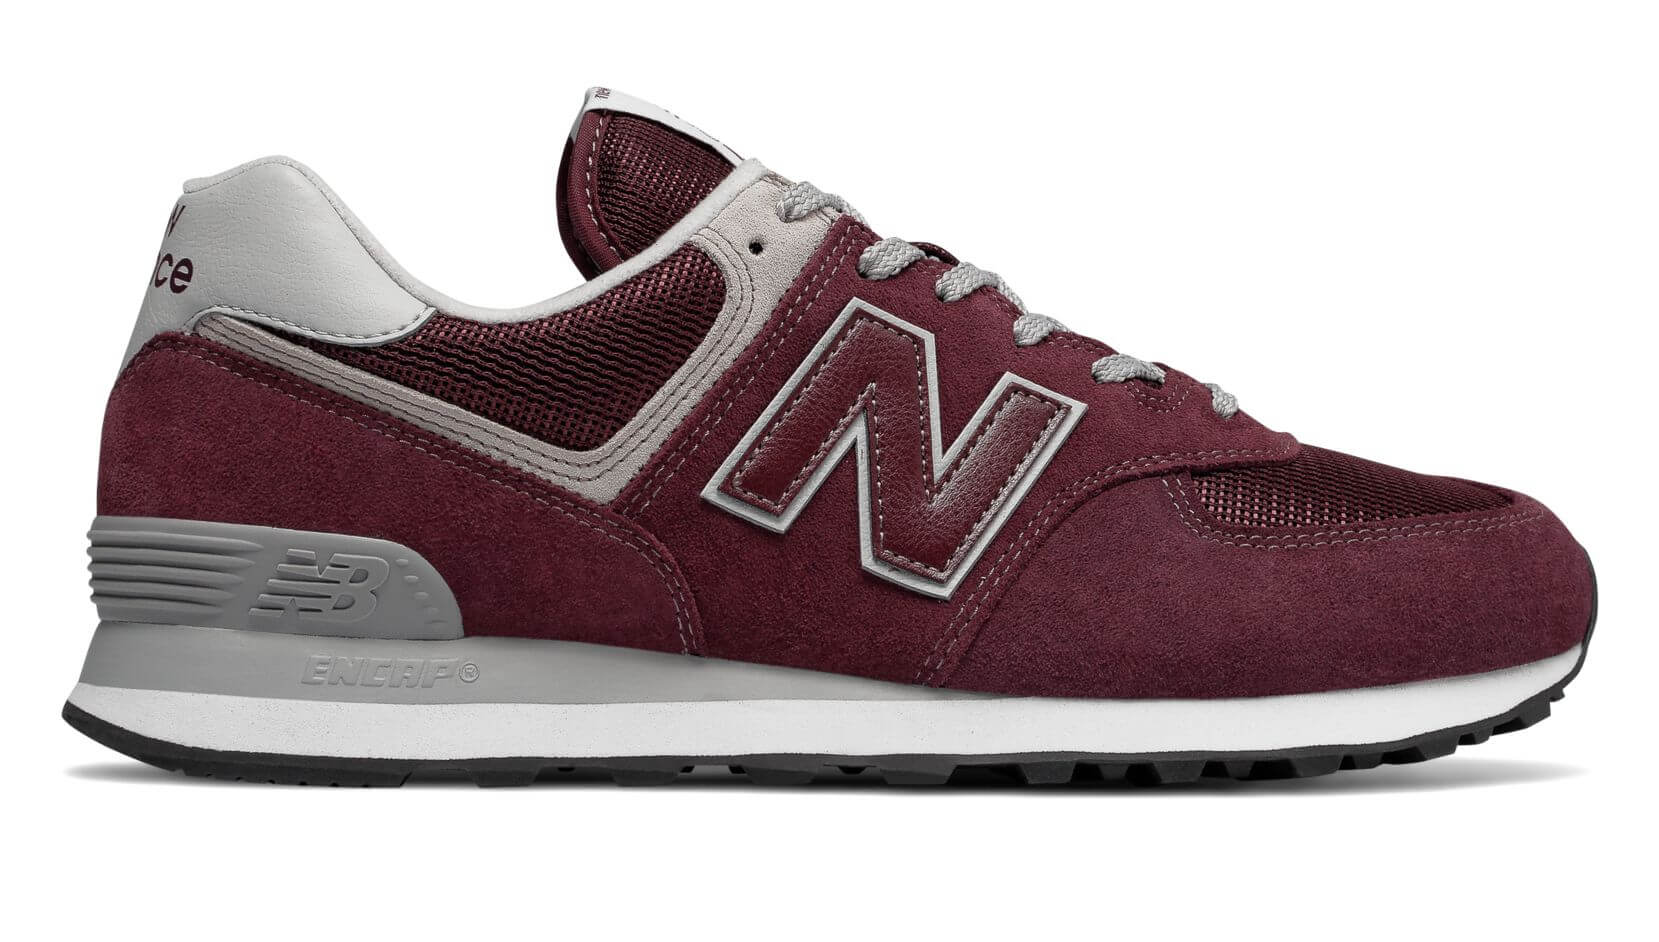 New Balance 574 shoe laces